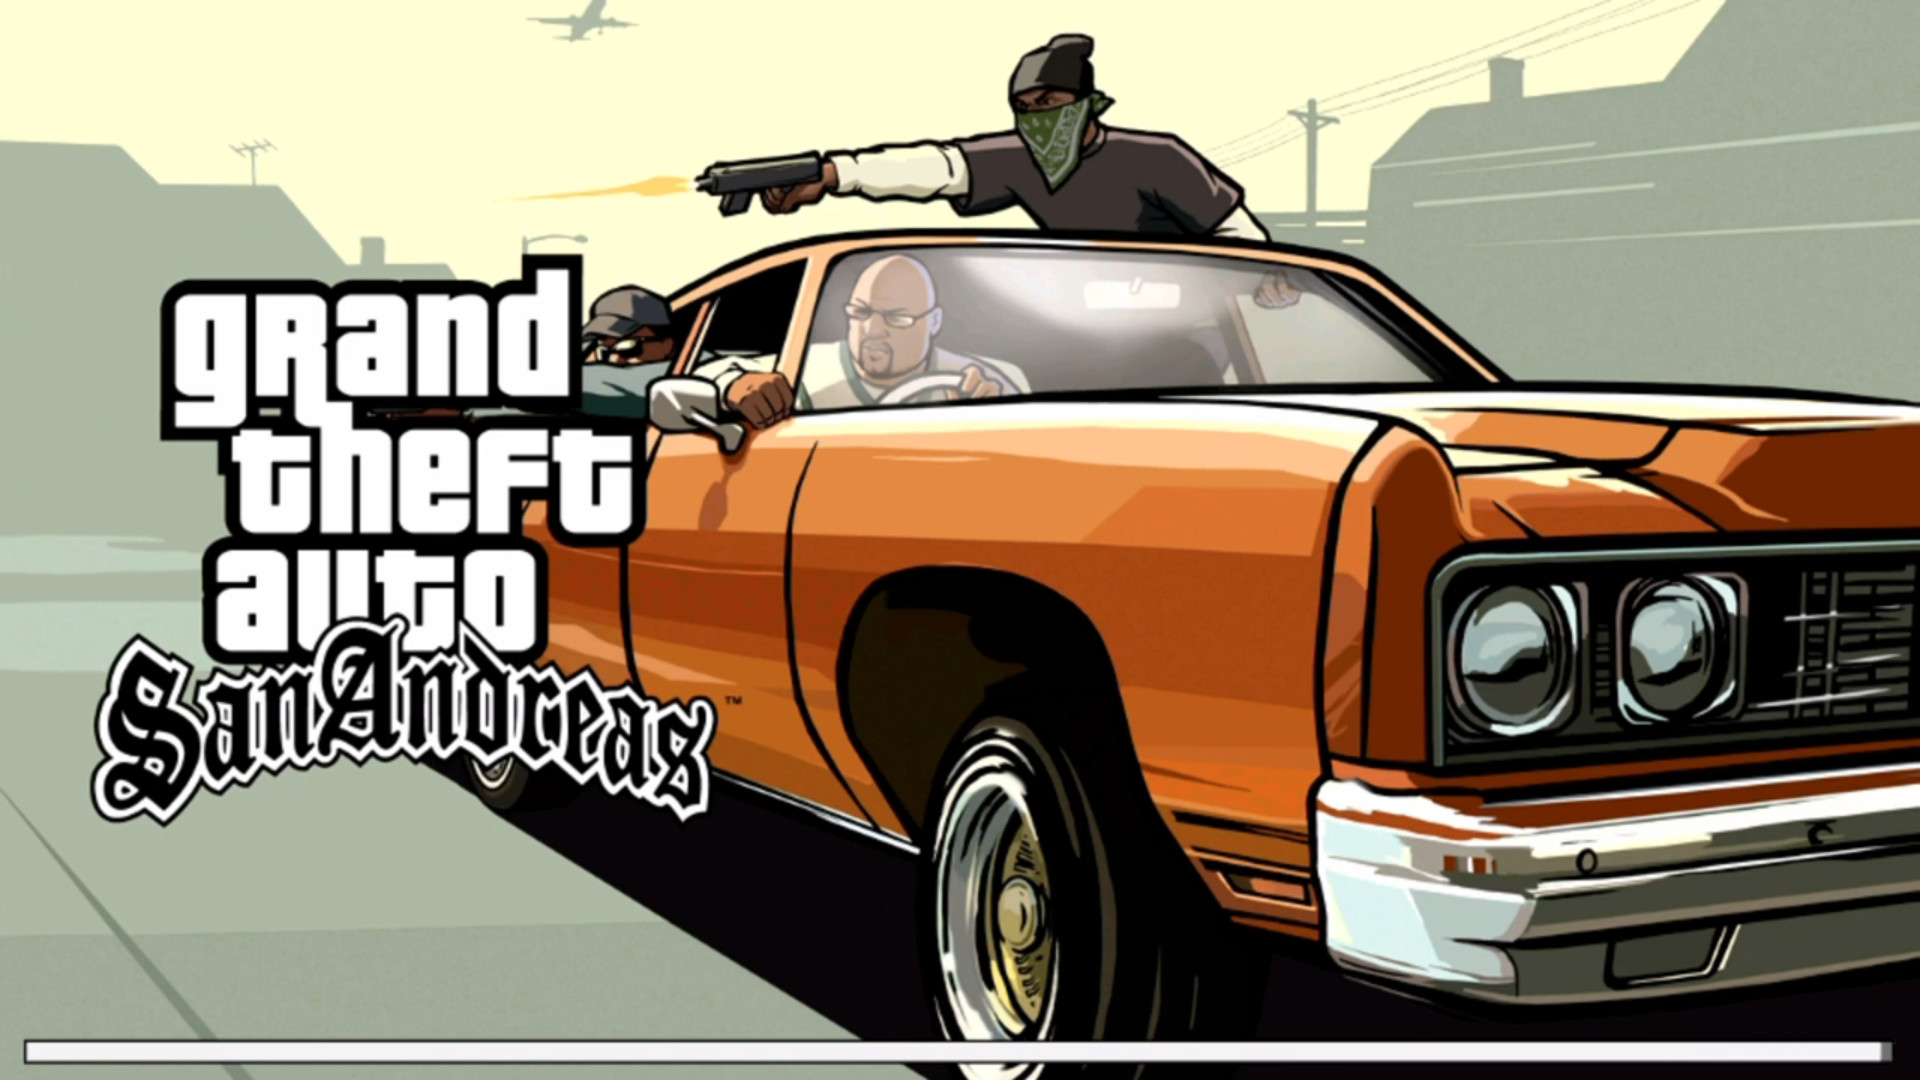 PSVita: Grand Theft Auto San Andreas port seeing significant progress - latest builds are free of graphical glitches and performance is getting better!